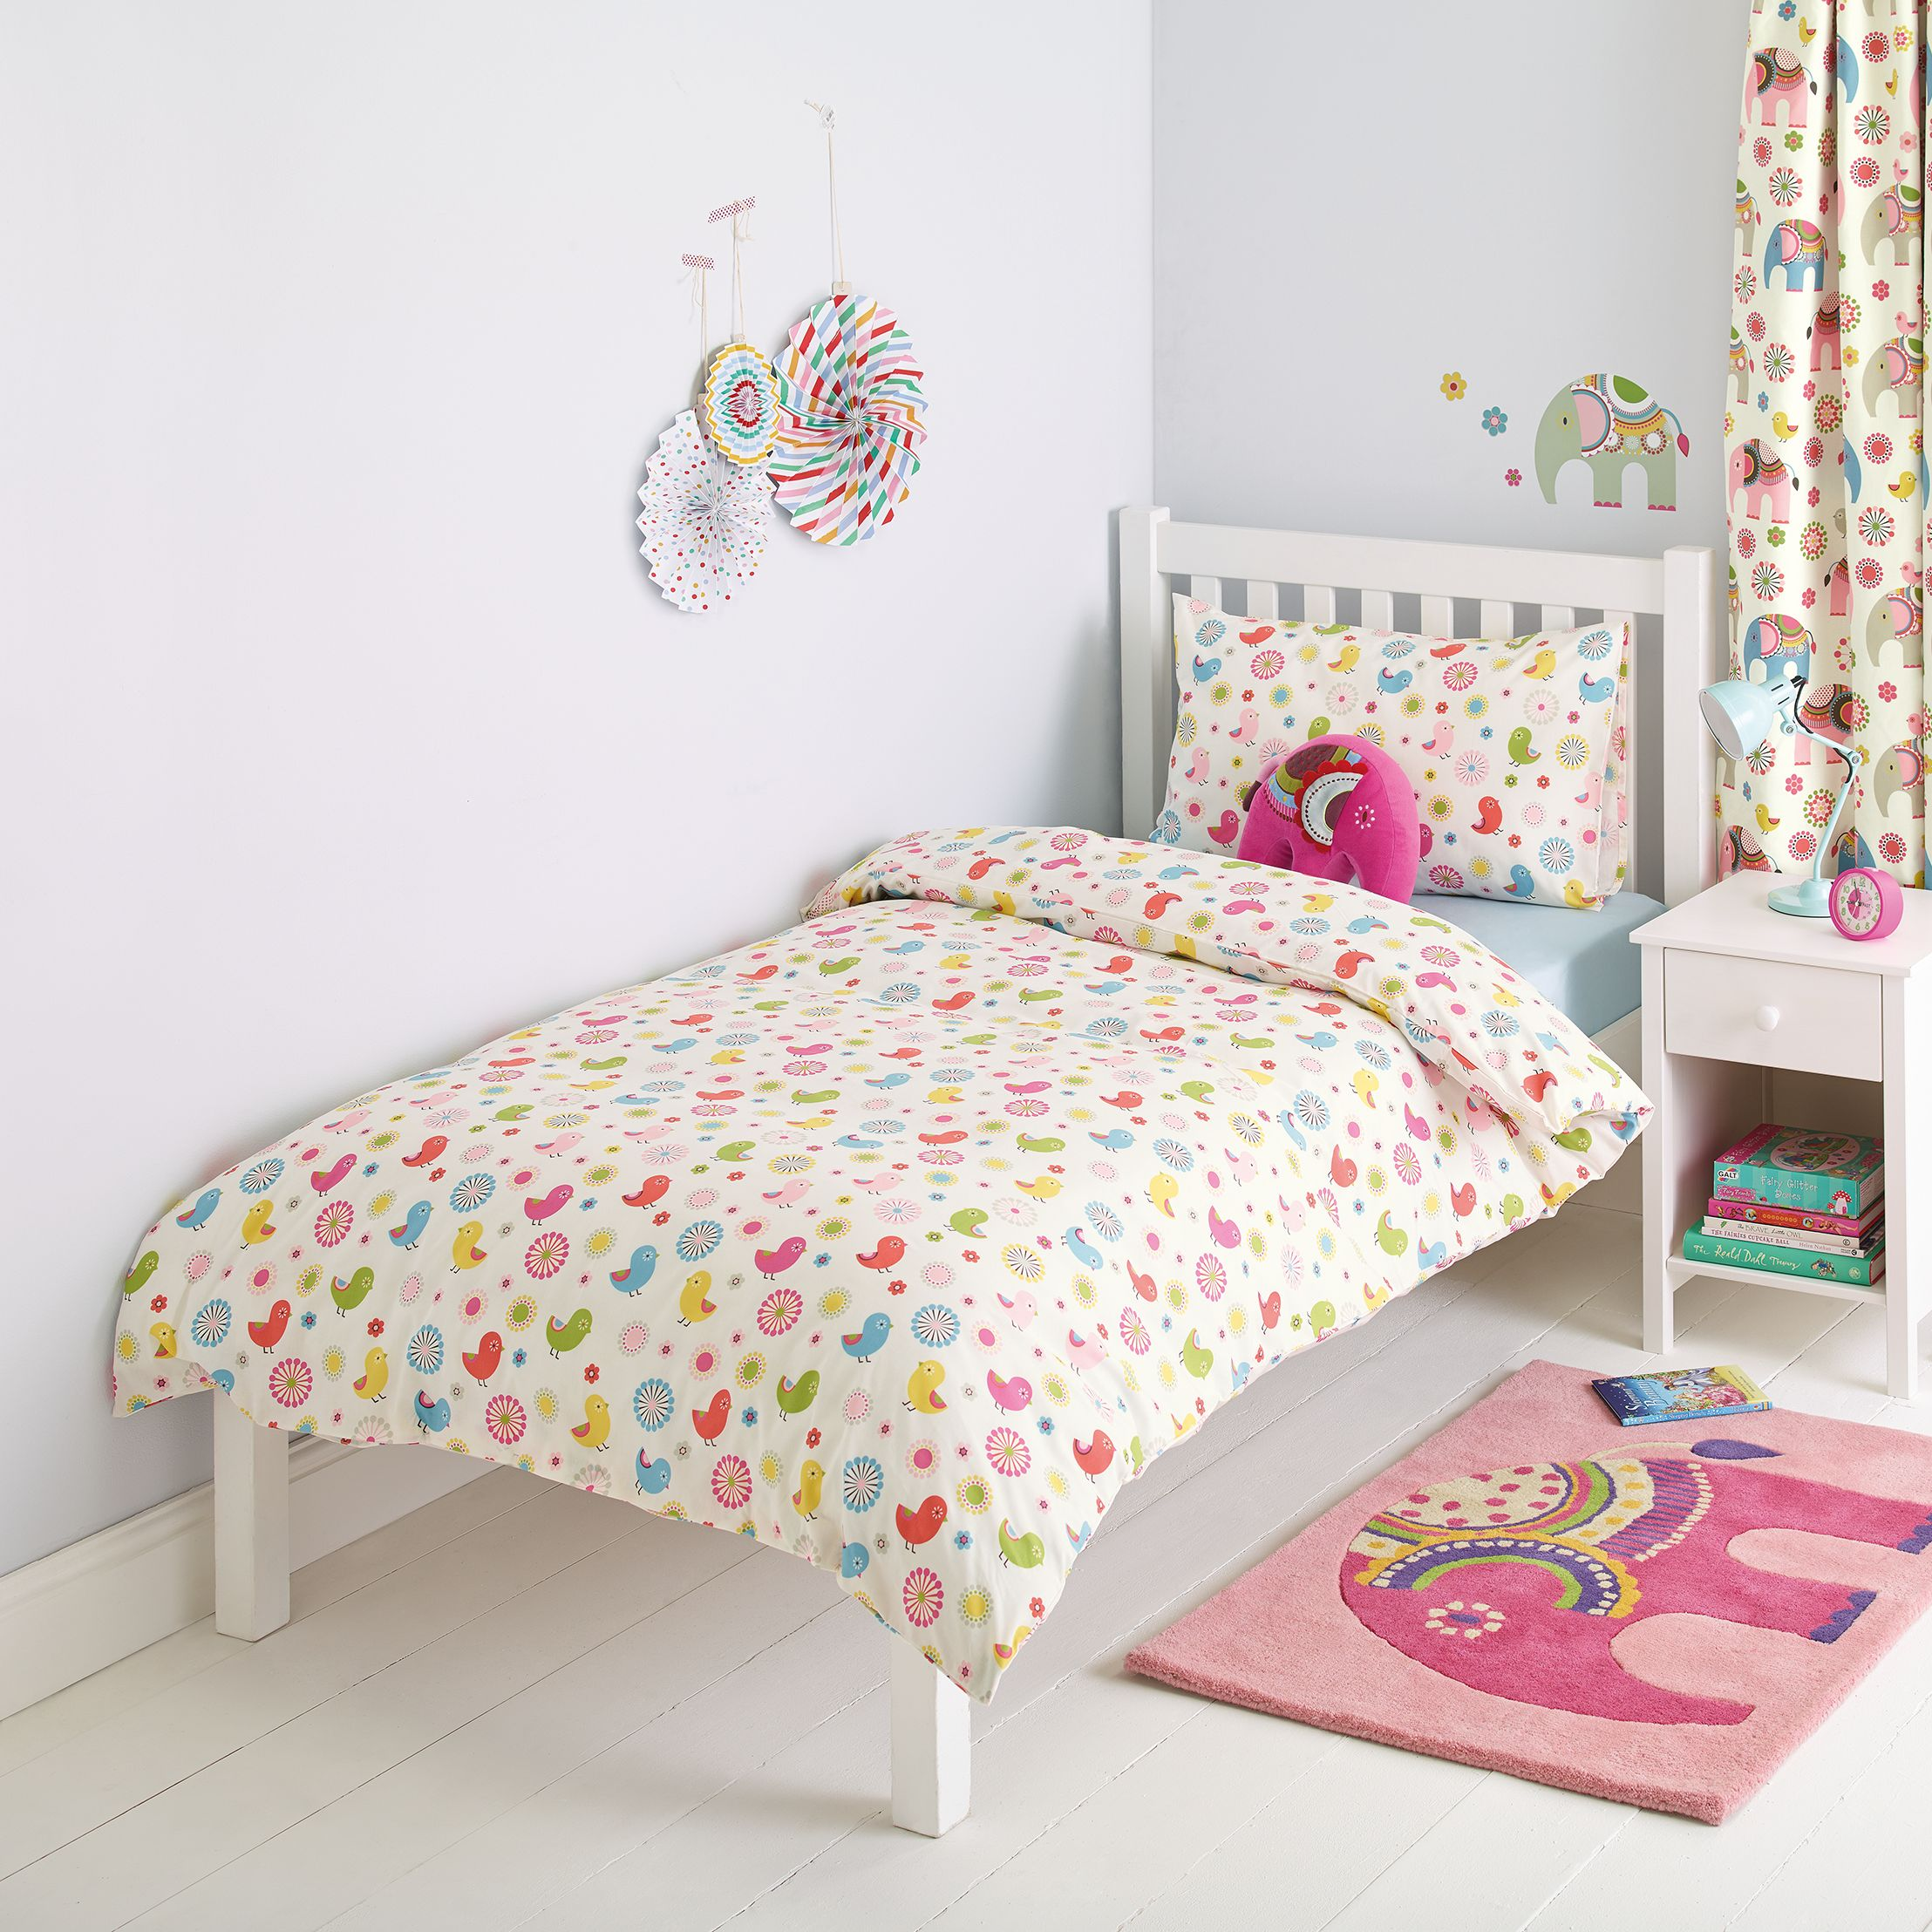 little home at John Lewis little home at John Lewis Abbey Repeat Duvet Cover and Pillowcase Set